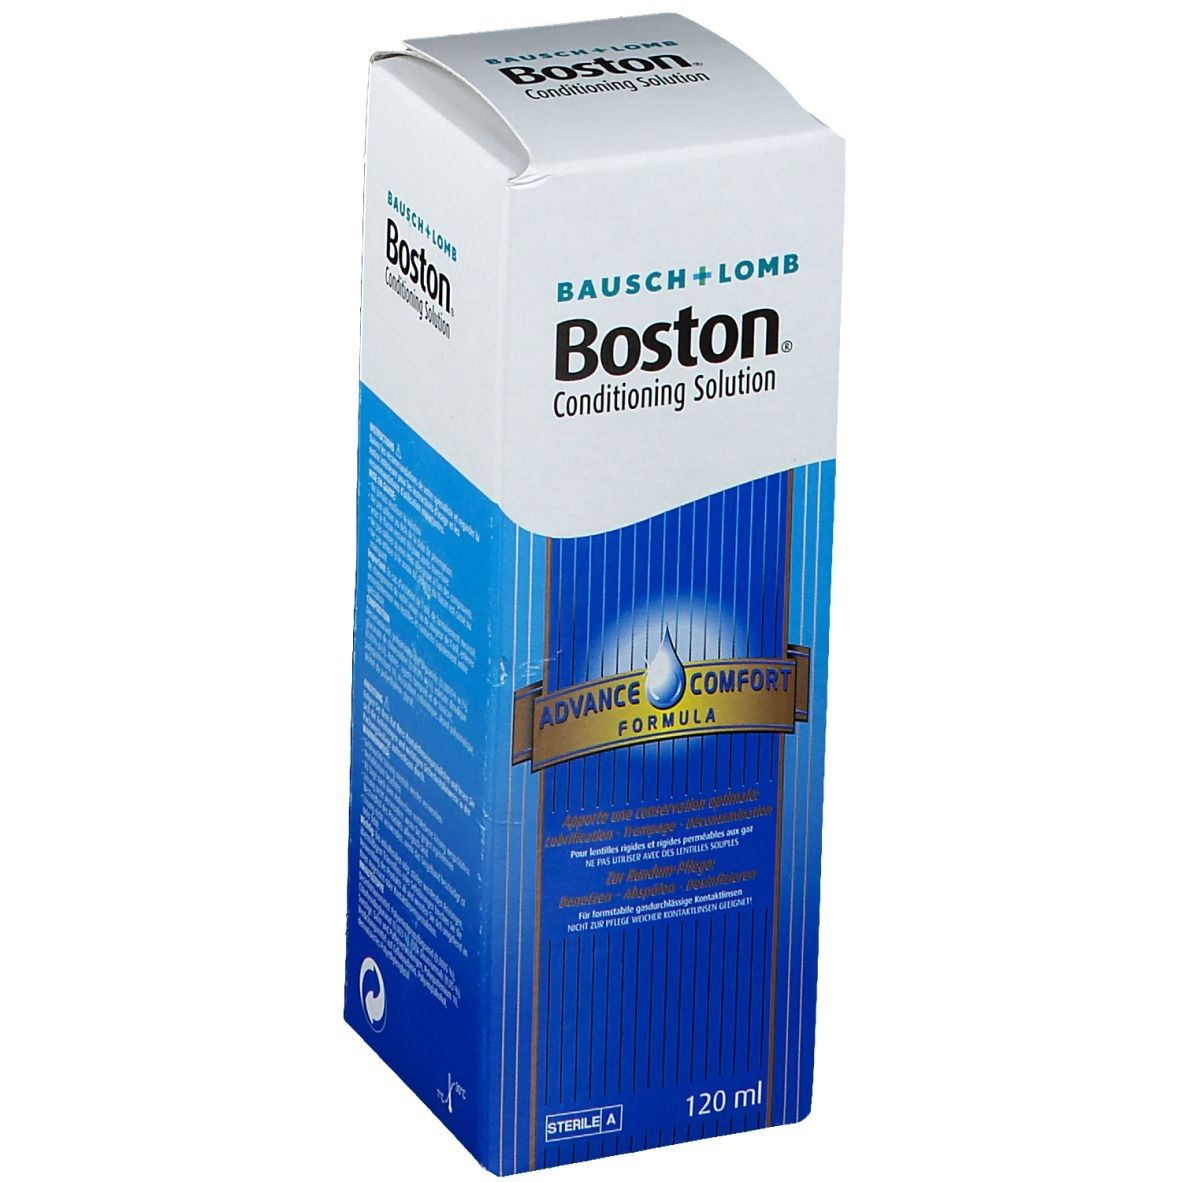 Image of Boston® Conditioning Solution